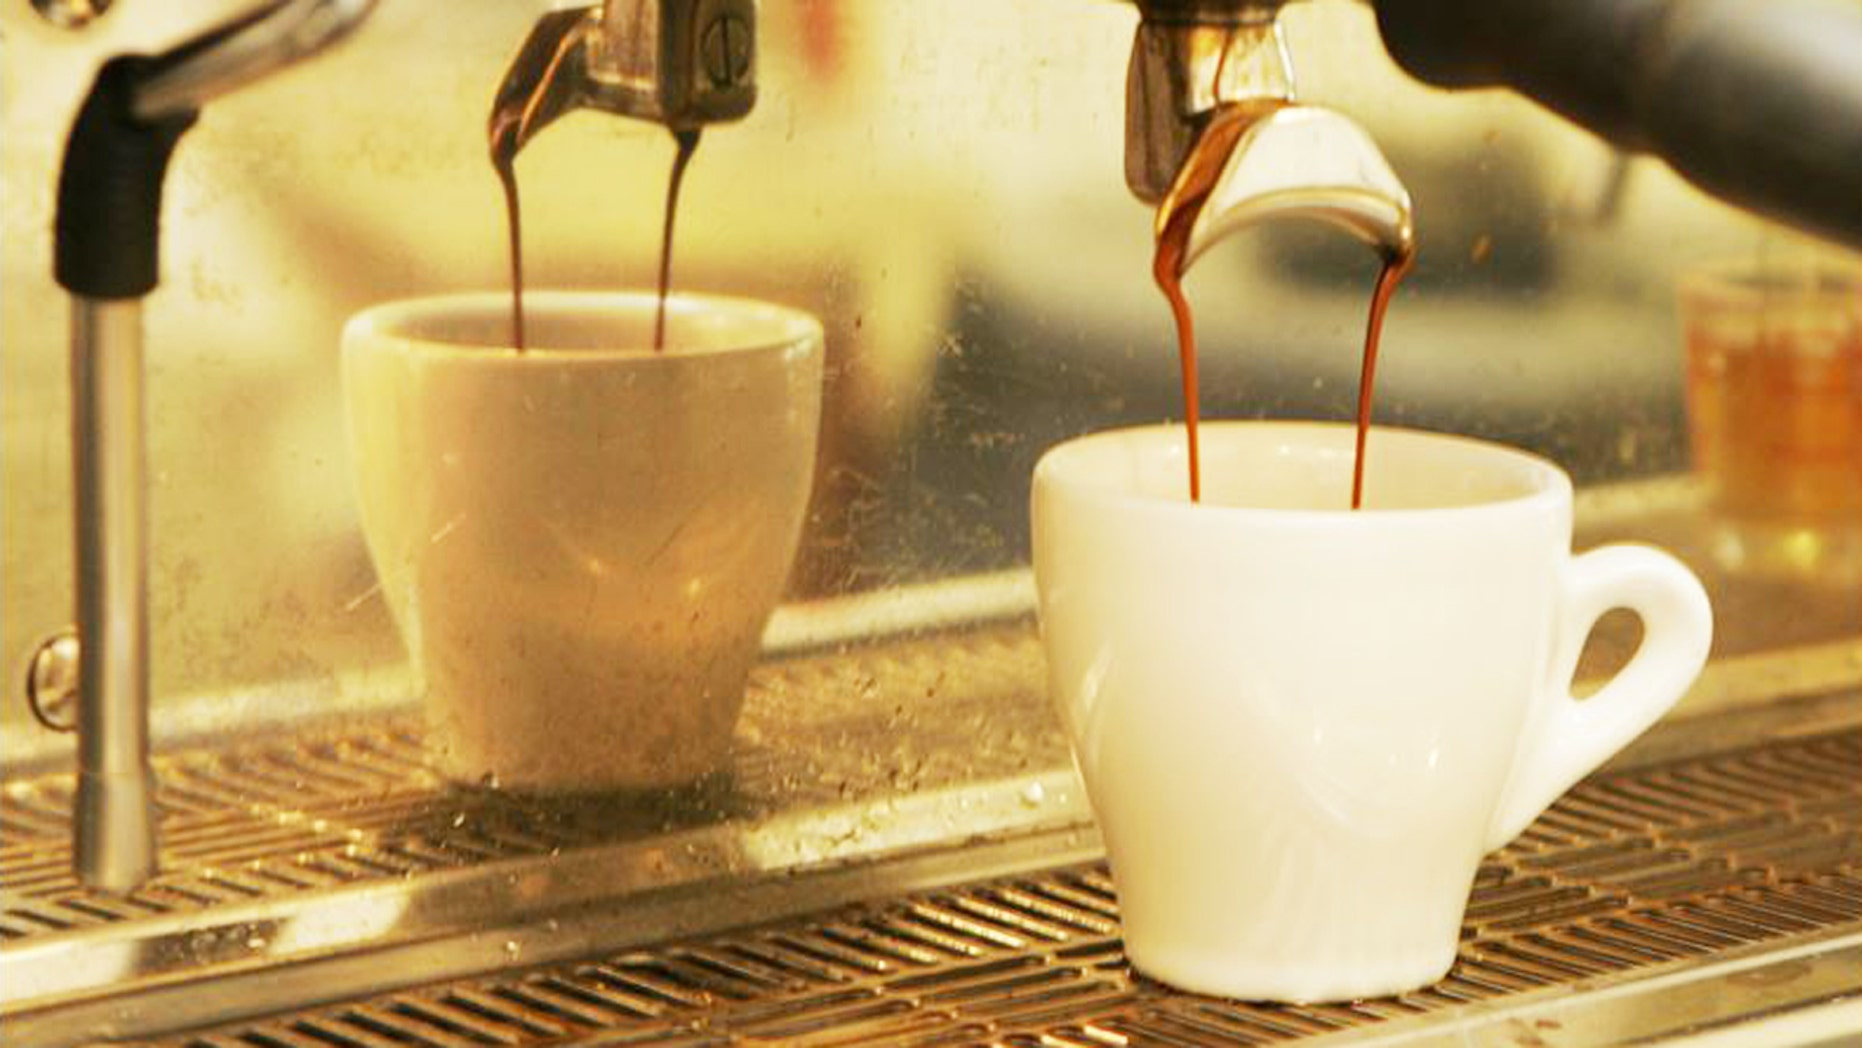 Rising demand for high end coffee is leading to a global crisis.